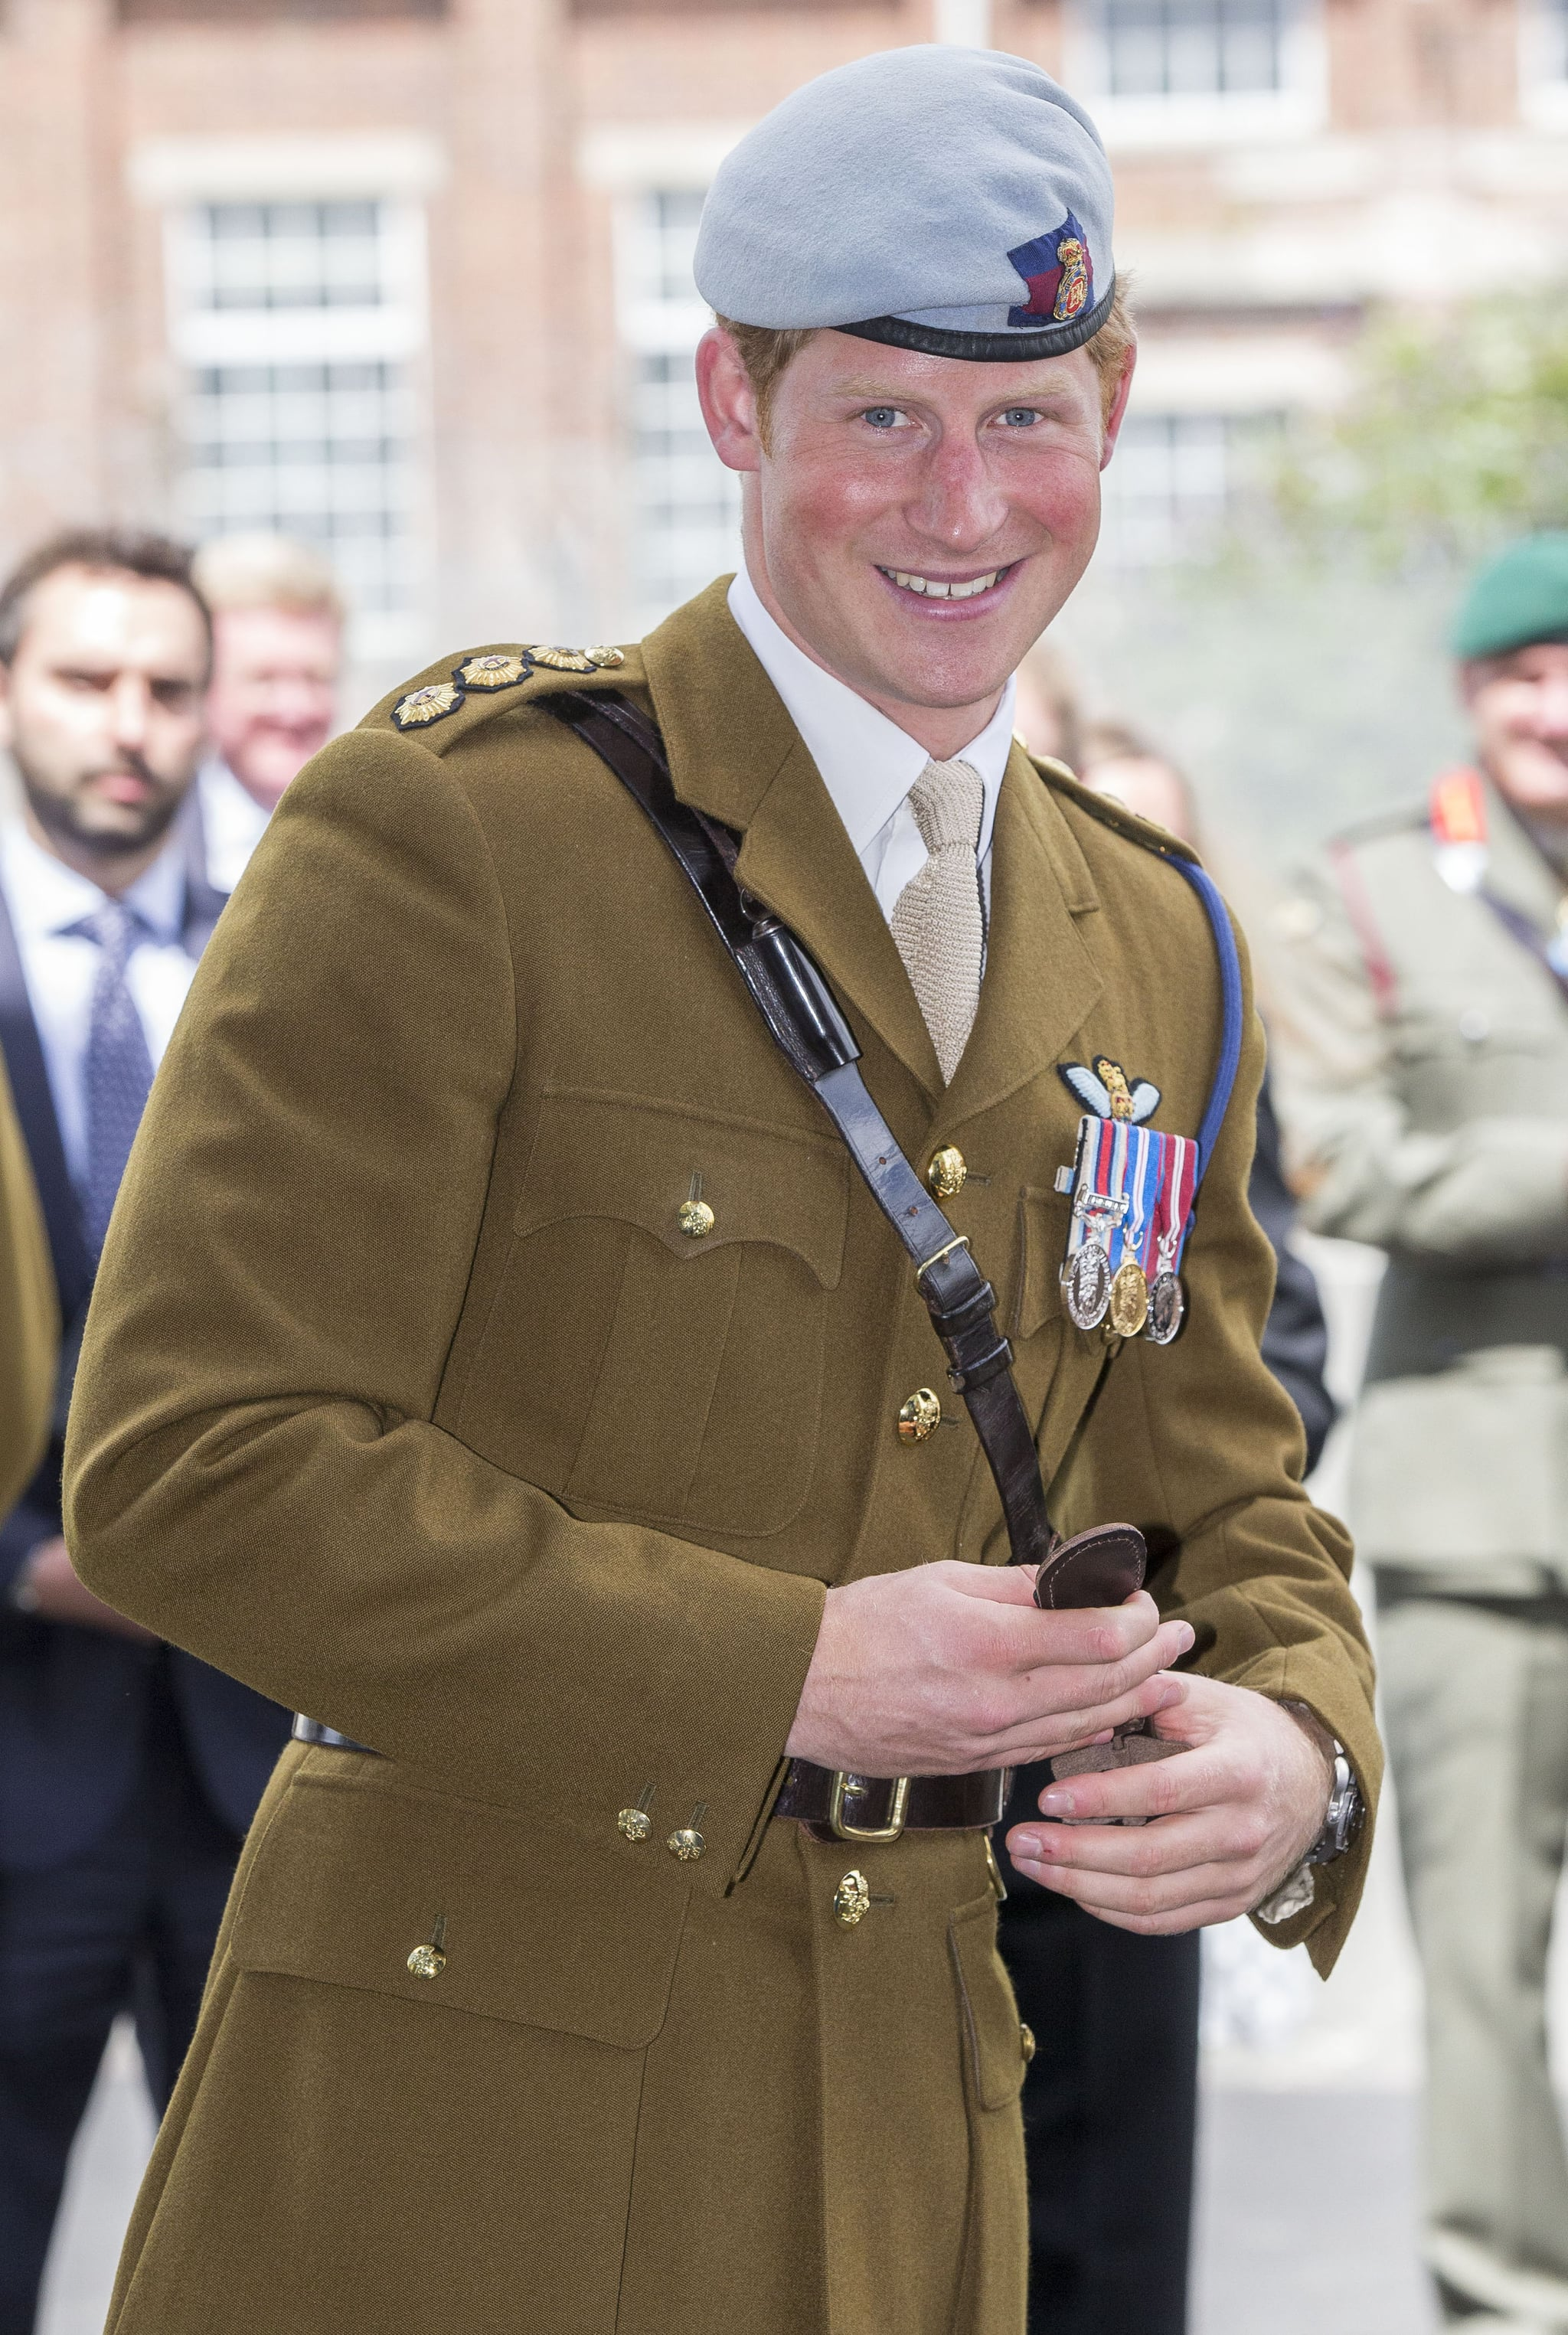 Prince Harry flashed a grin after cutting the ribbon to open a new center at the naval base in Devonport, England, in August 2013.